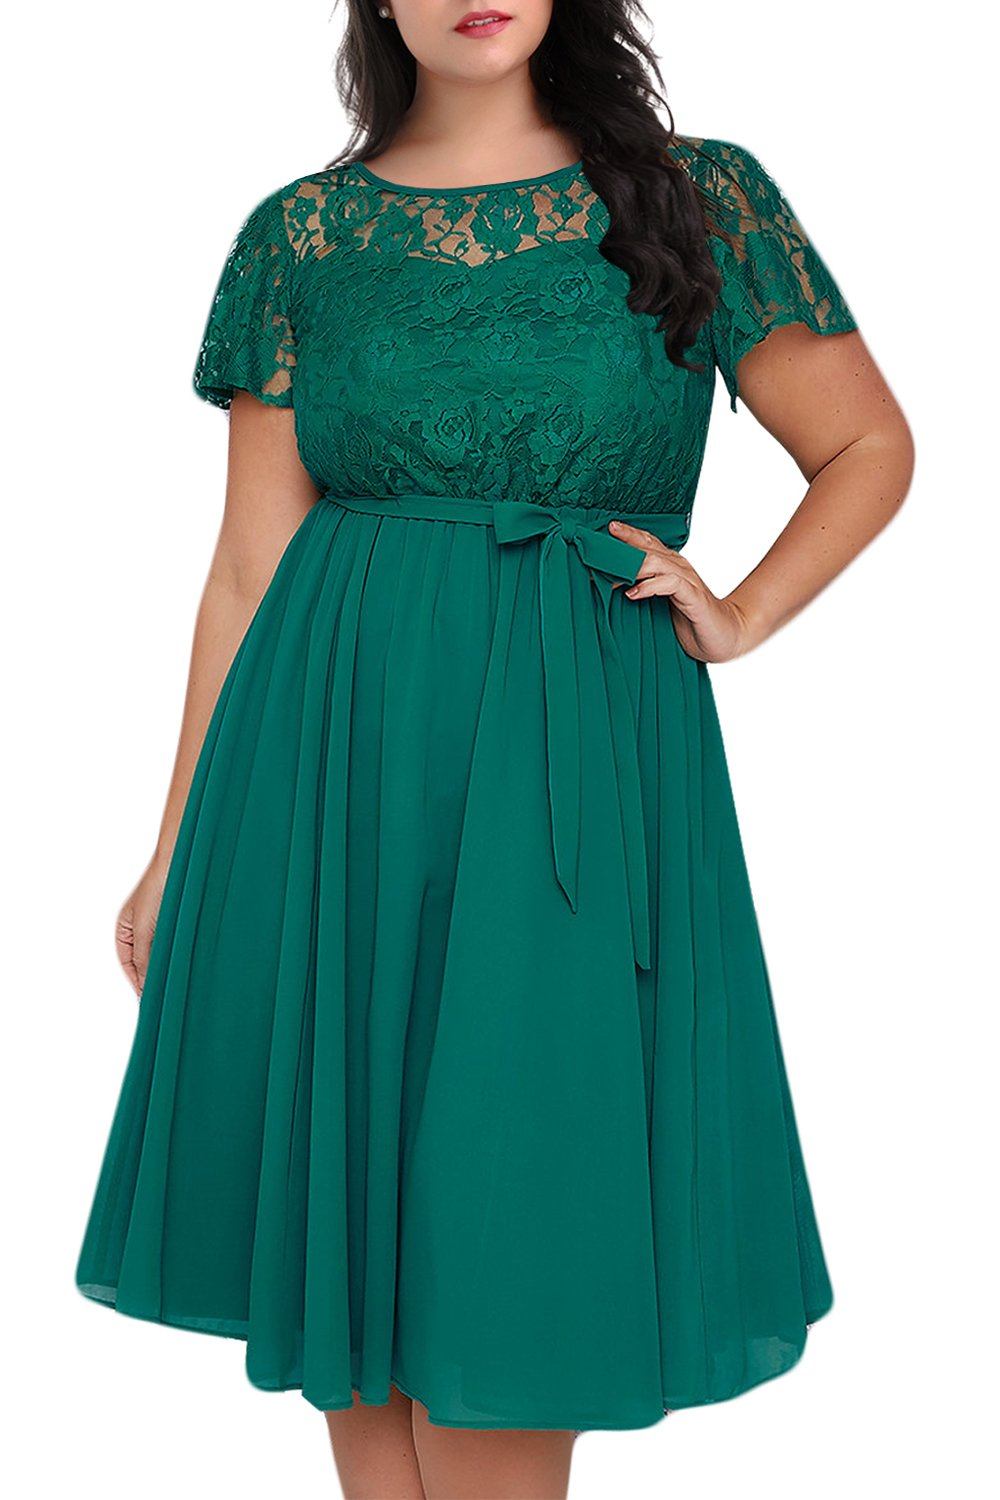 Plus Size Dresses - Women's Plus Size High Waist Velvet Sexy Faux Wrap Pencil Cocktail Midi Dresses